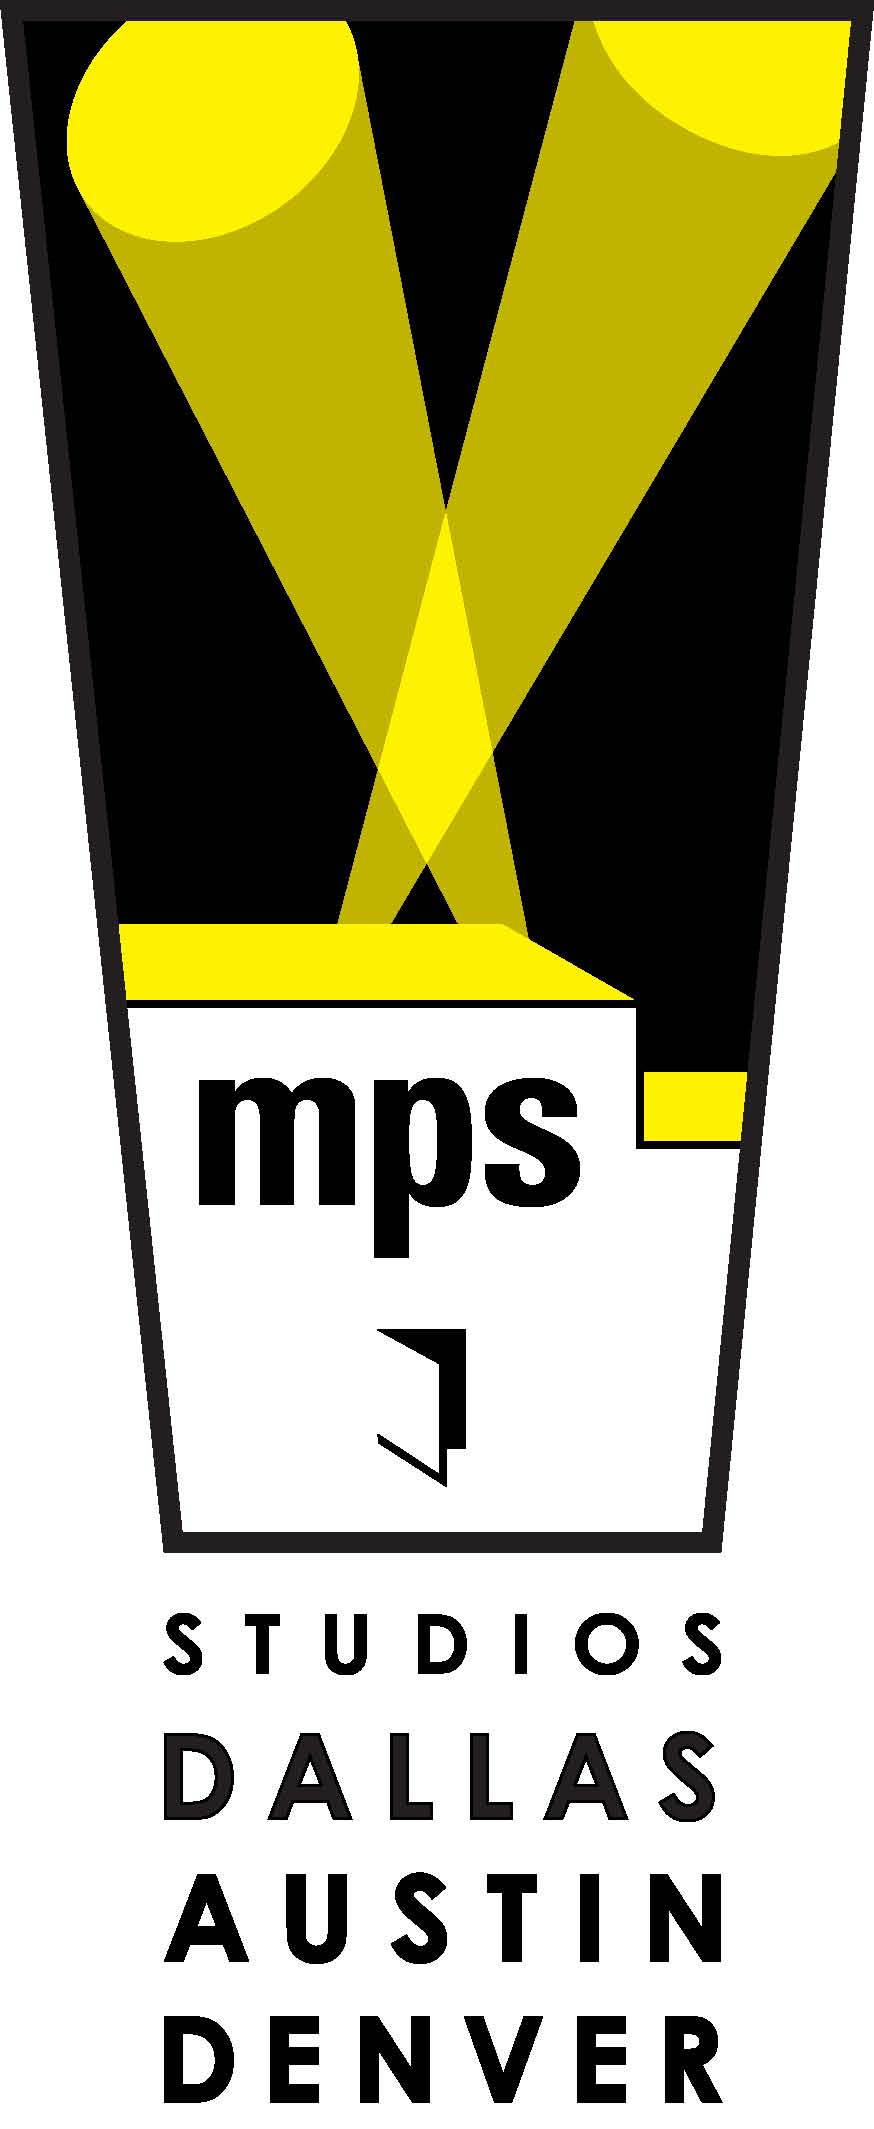 mps_studios_dallas_austin_denver.jpg